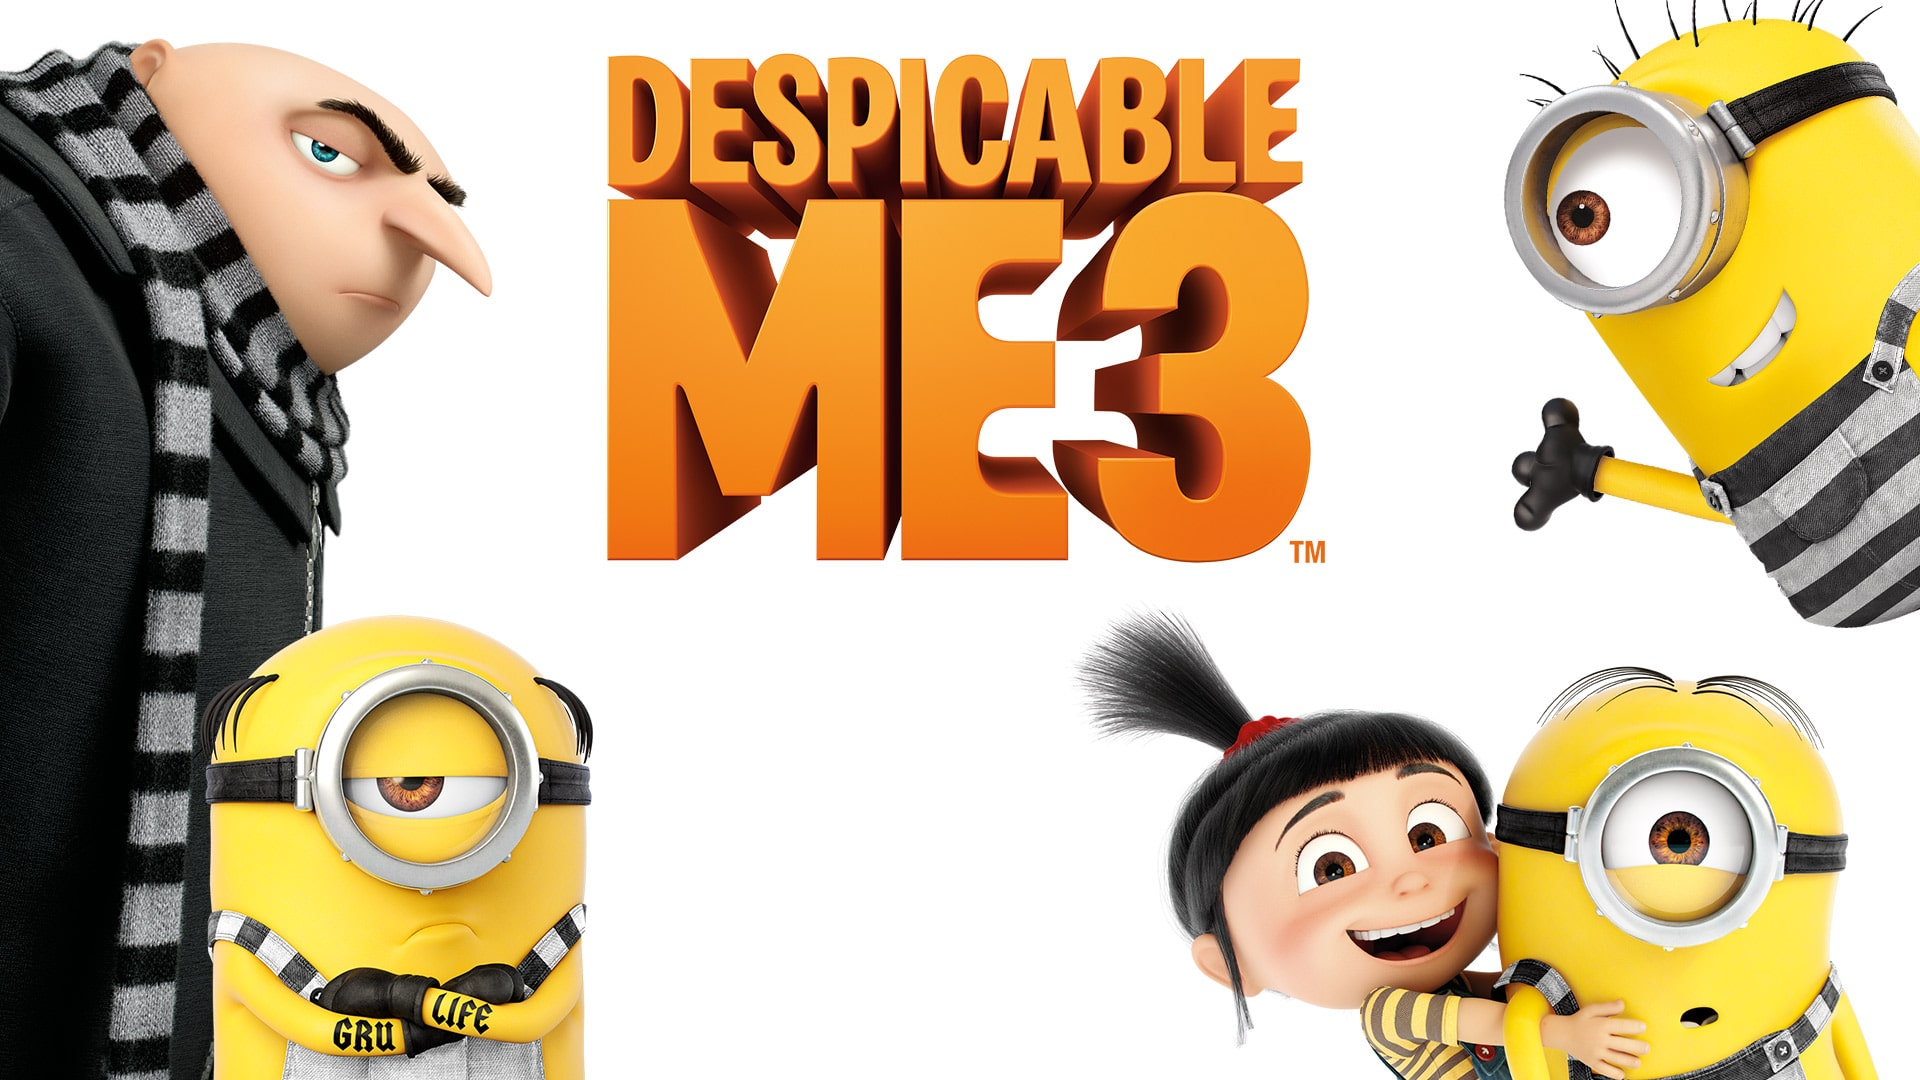 Despicable Me 3 (2017) Hindi Dubbed Full Movie Download